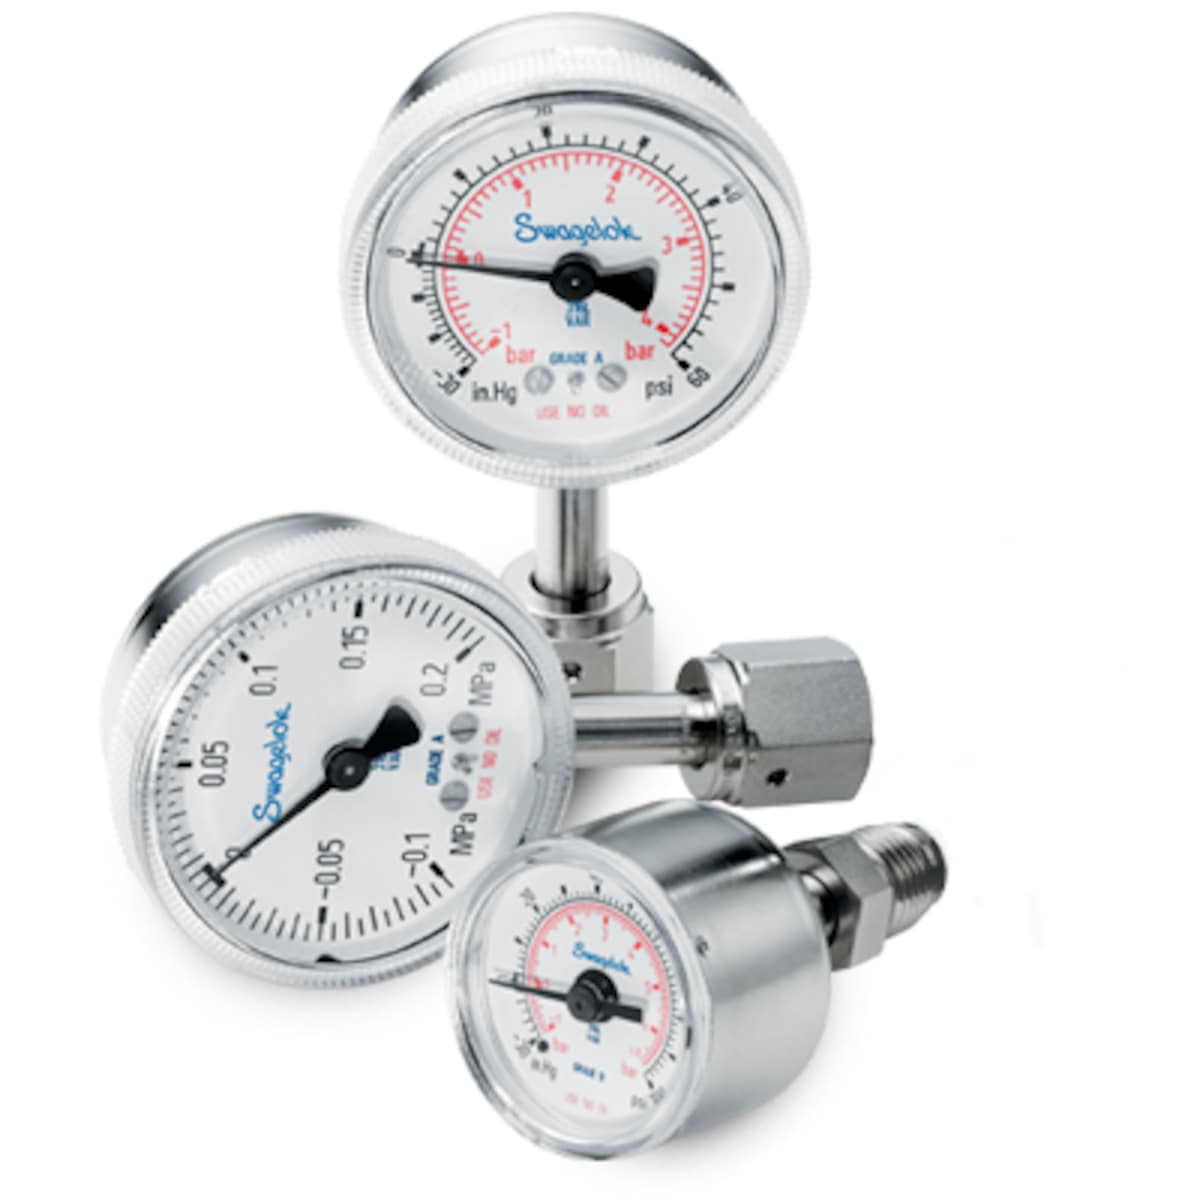 Pressure Gauges, Ultrahigh-Purity and Clean Dry Air